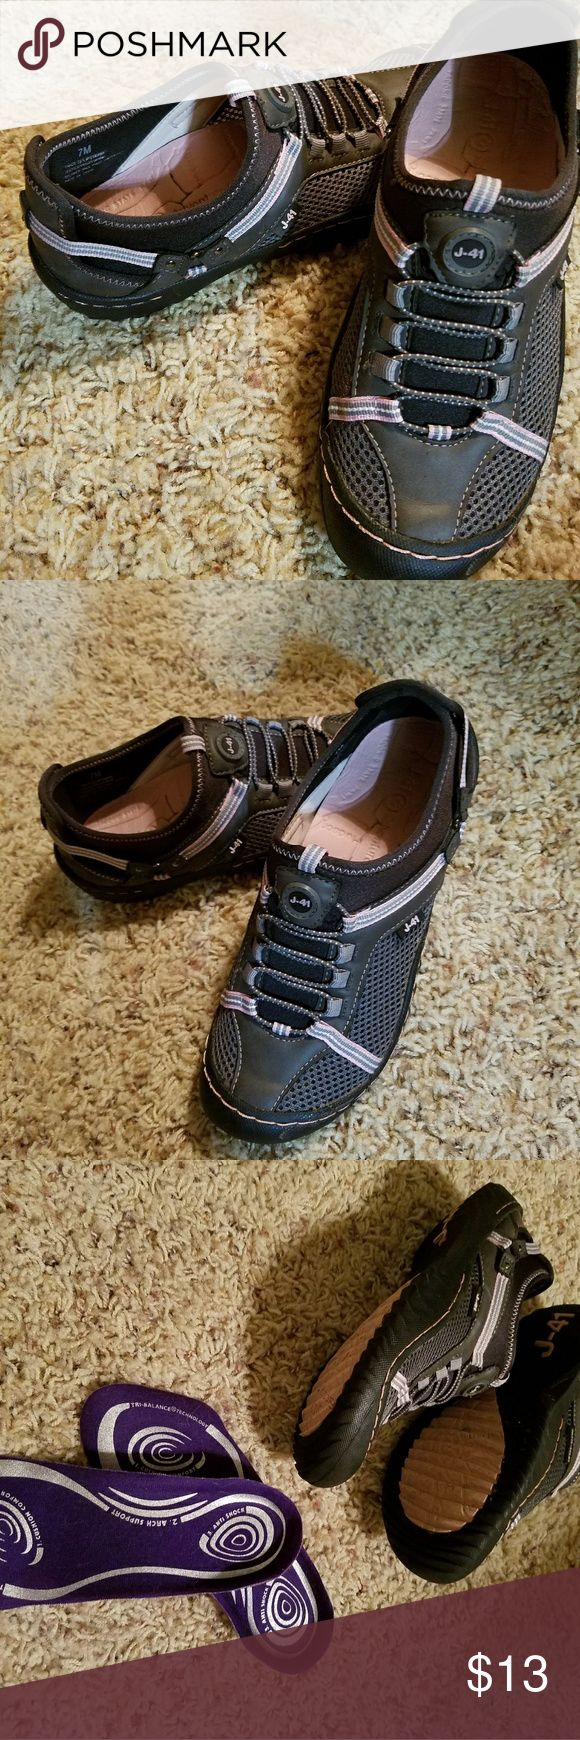 Jeep J-41 shoes Jeep J-41 shoes. Free extra set of insoles included! jeep Shoes Athletic Shoes